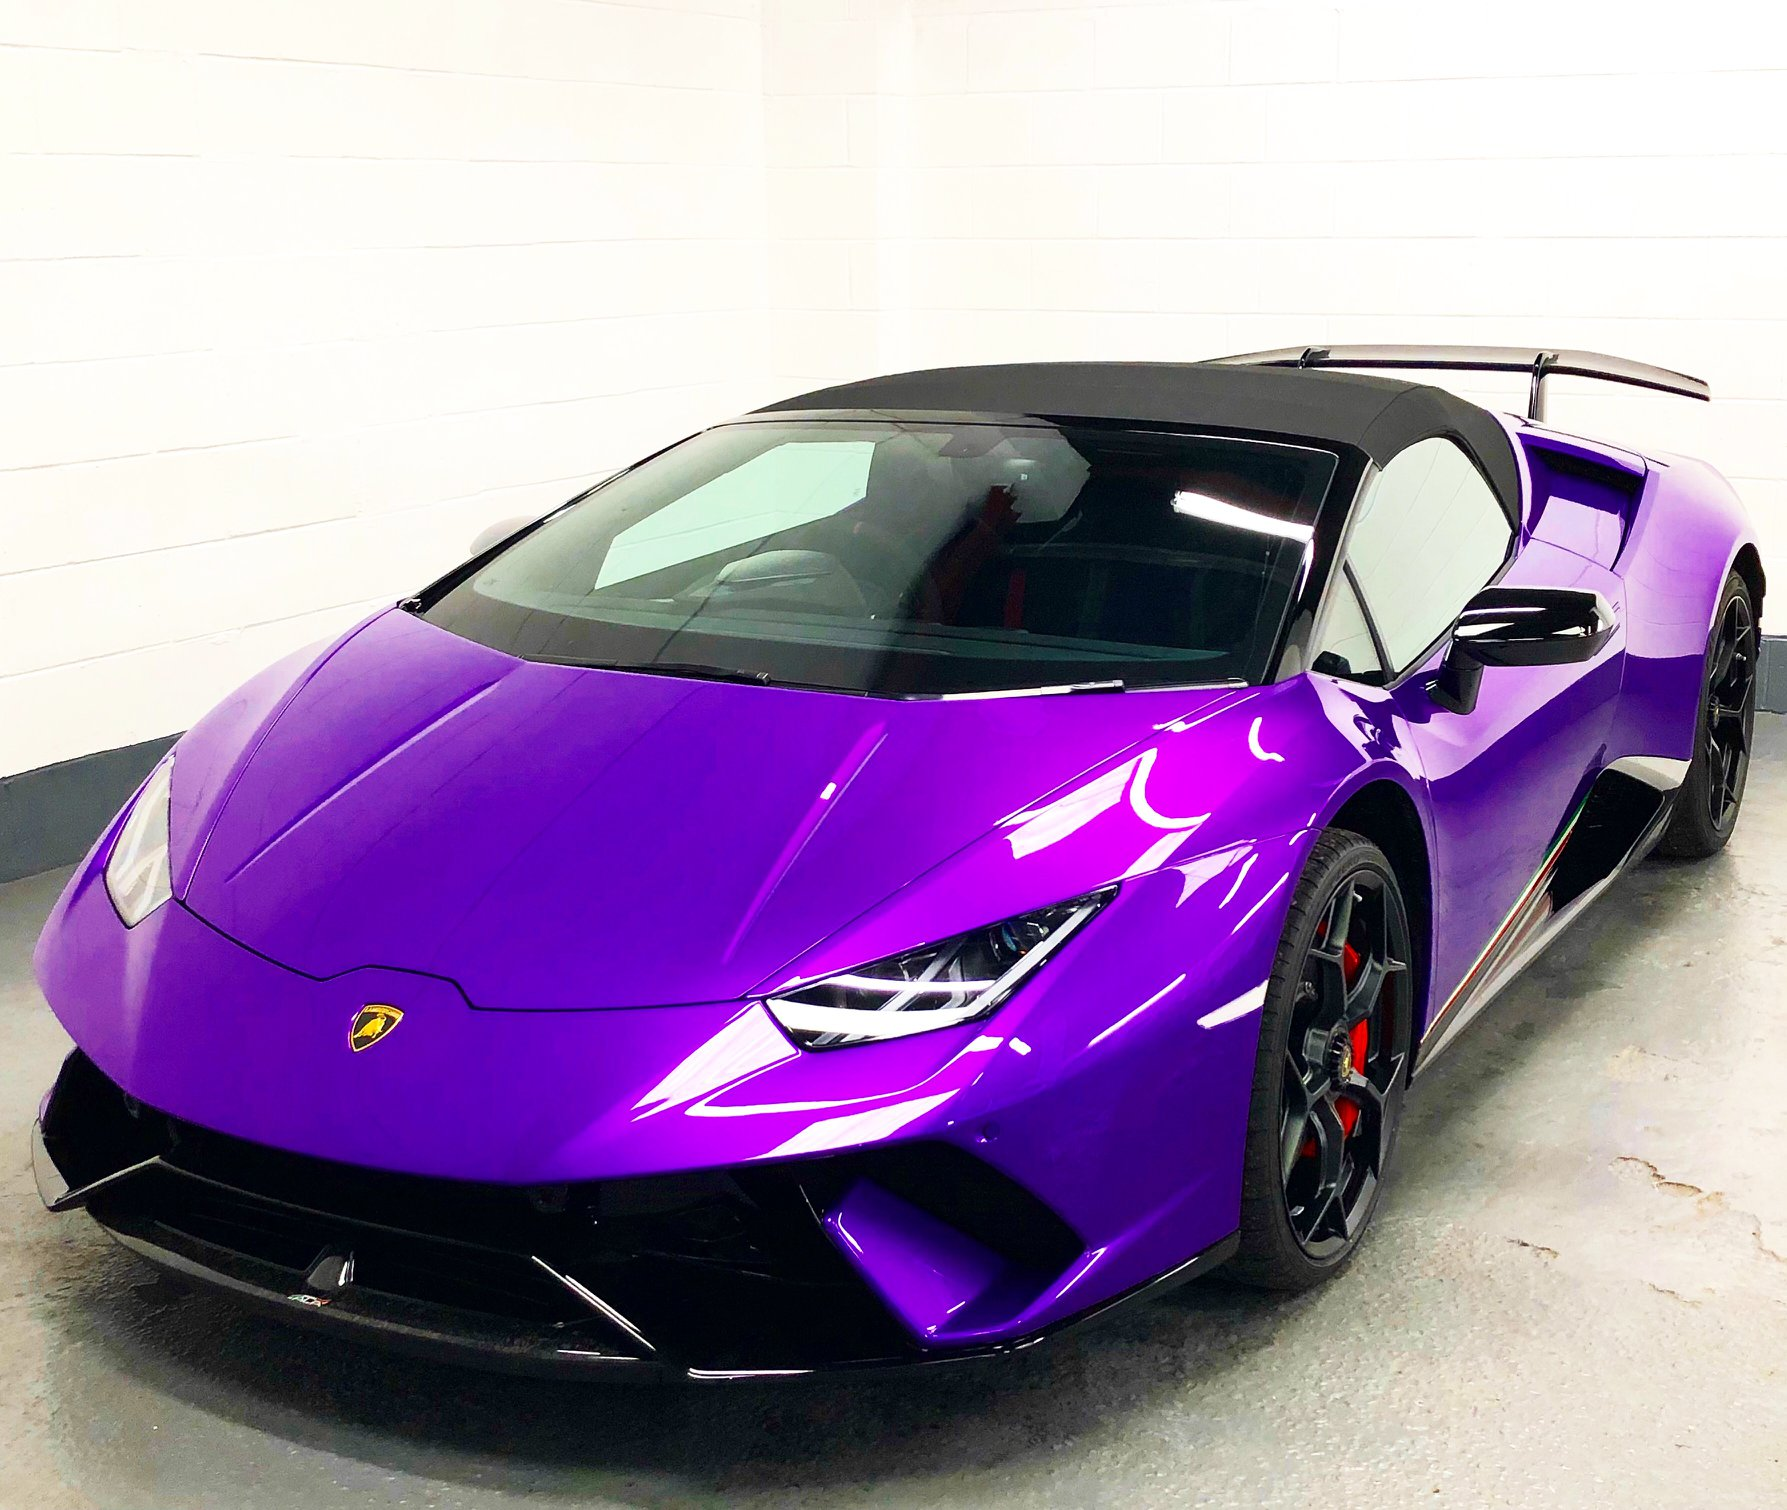 Lamborghini Huracan Performante Spyder Protection Detail